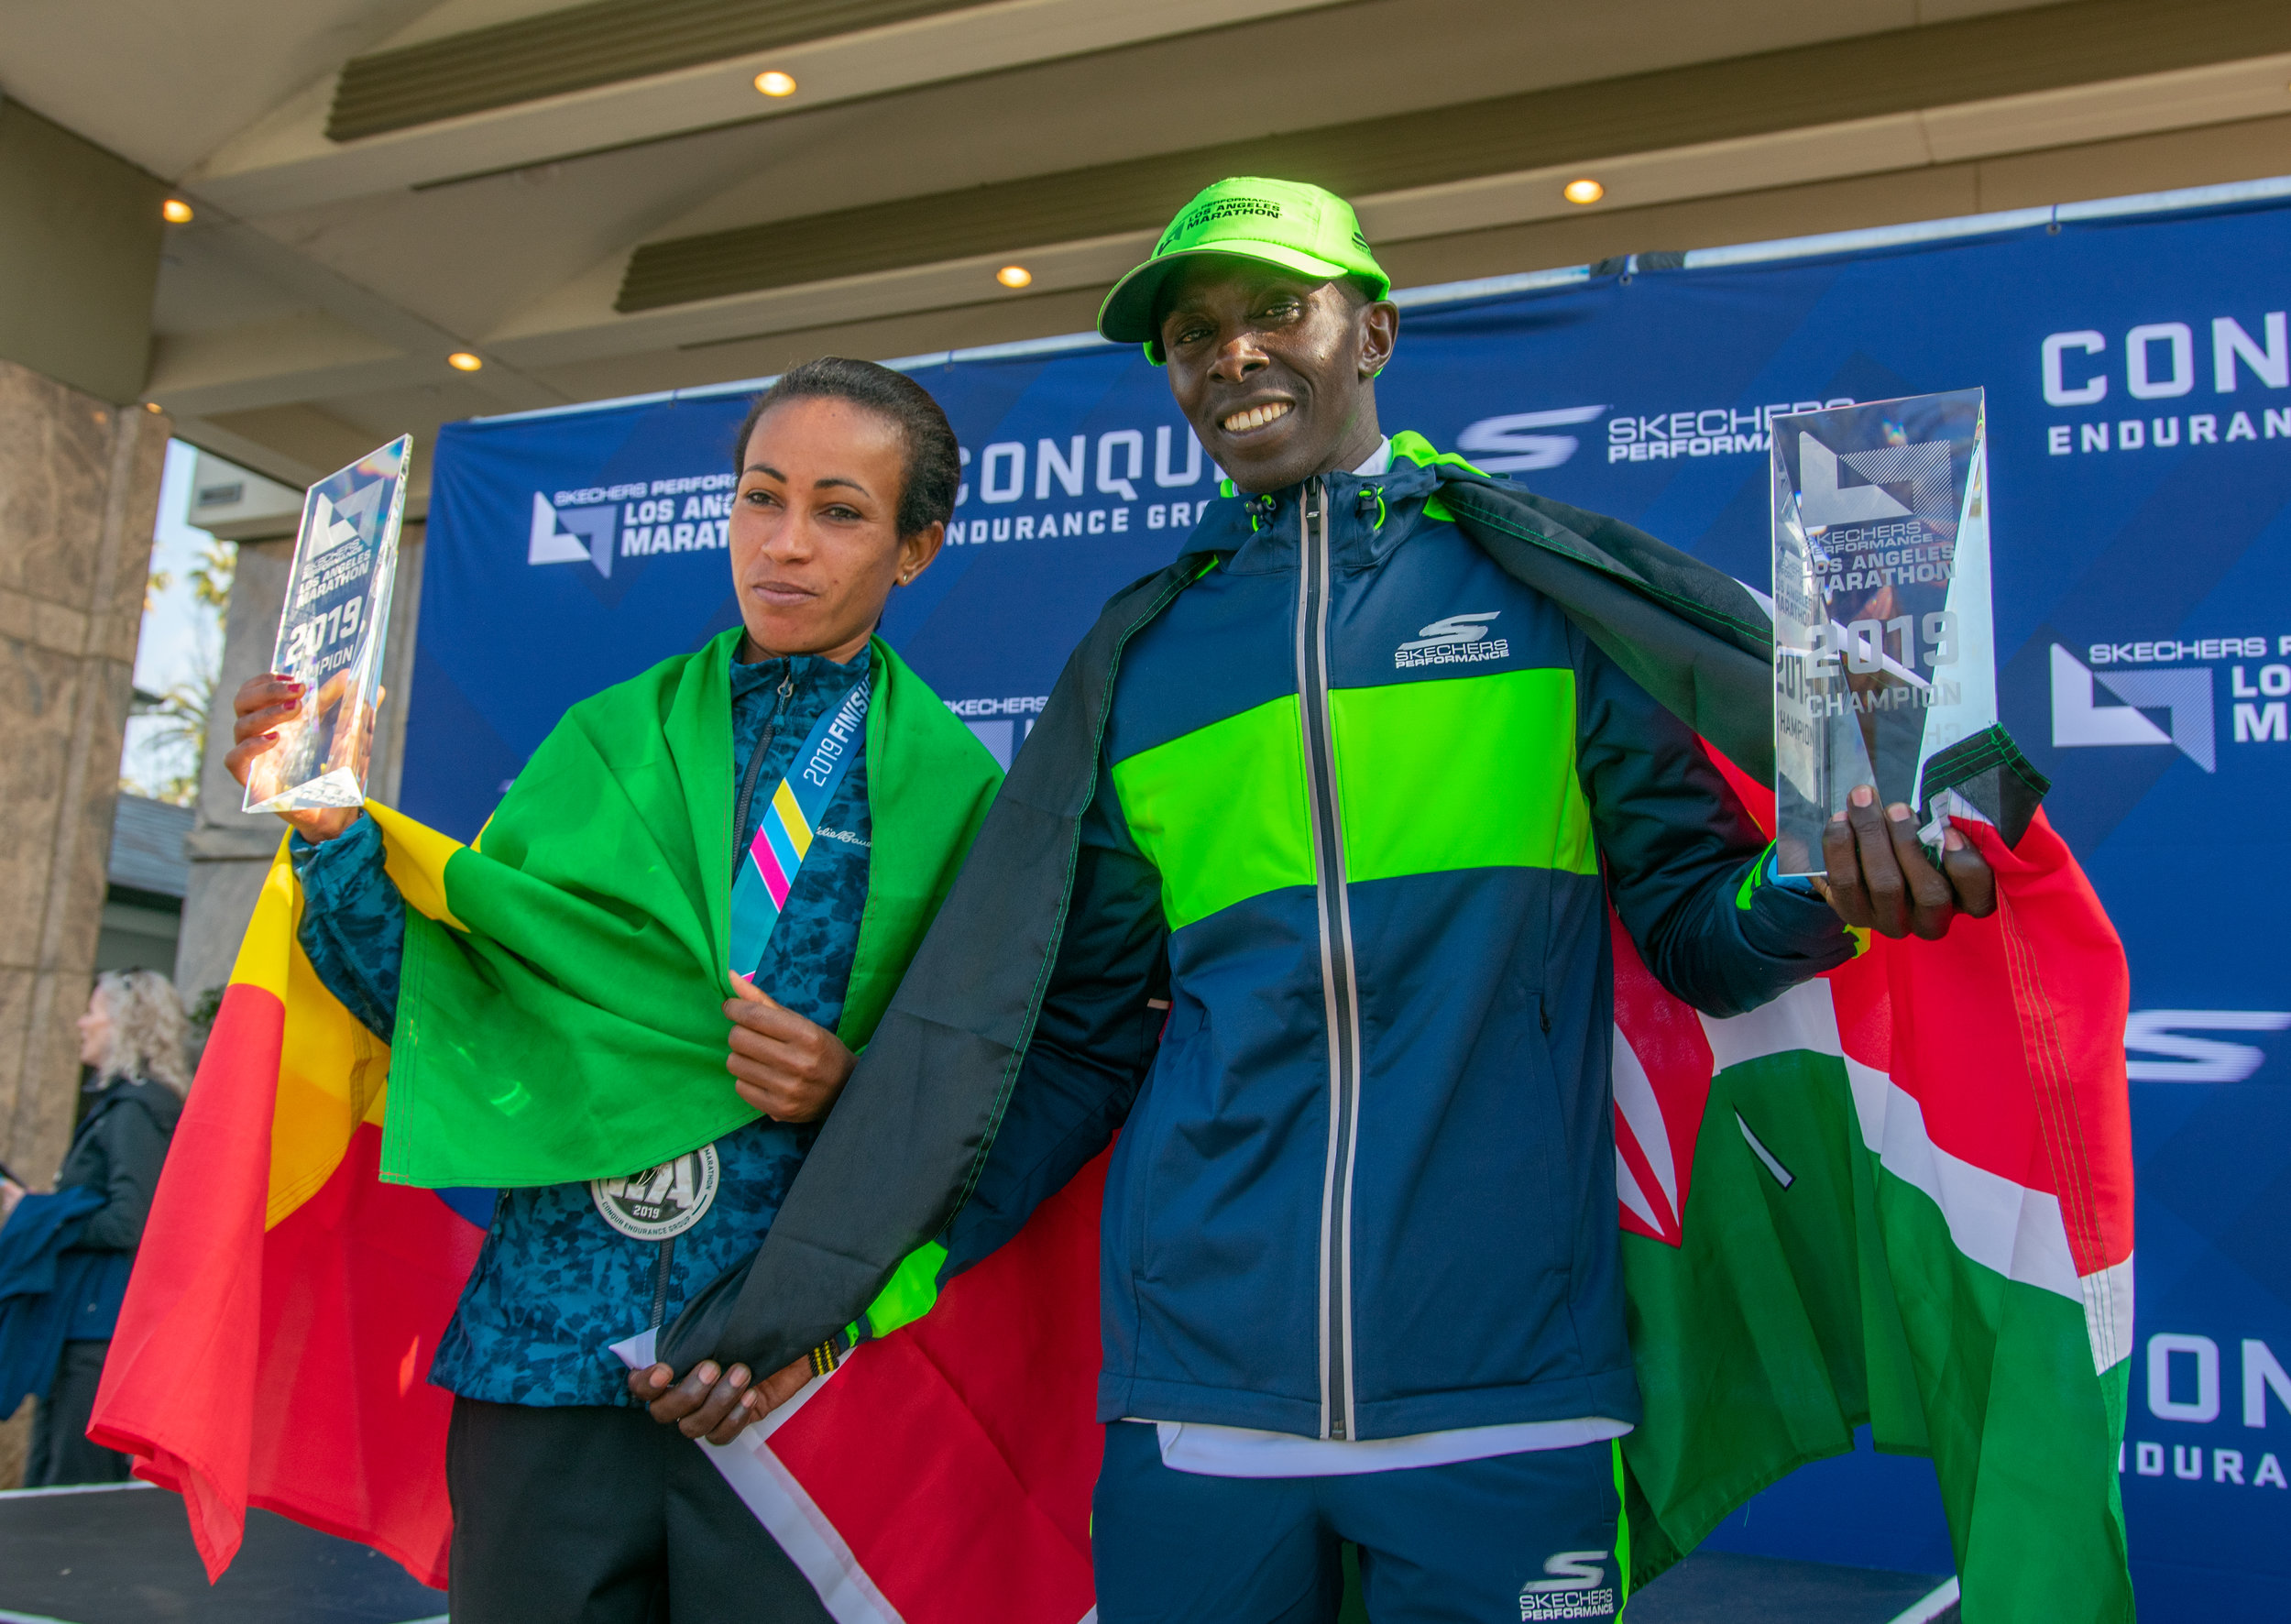 The winners of the Women's and Men's leaderboards, (left to right) Askale Merachi of Ethiopian and Elisha Barno of Kenya pose with their medals and trophies in front of the Fairmont Hotel in Santa Monica Calif. on Sunday March 24th 2019. (Conner Savage Corsair Staff).